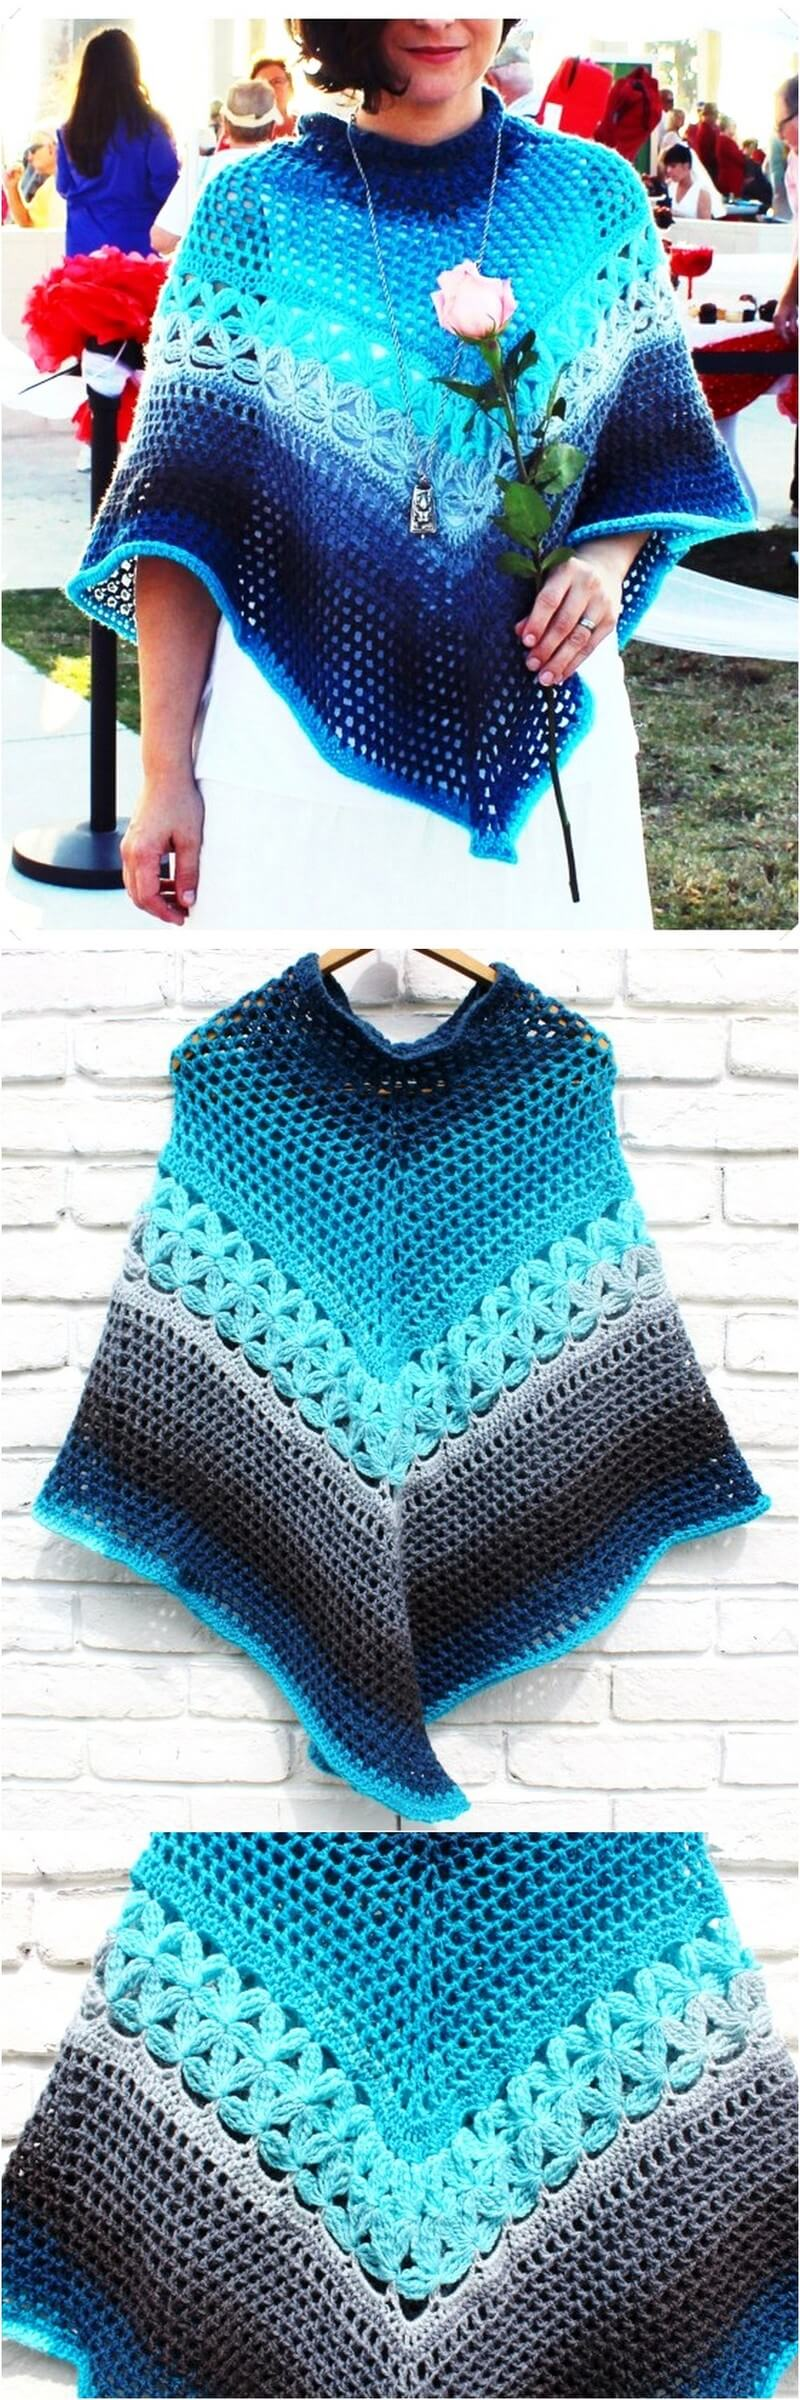 Cool Free Crochet Patterns Available On Web Crochet Patterns